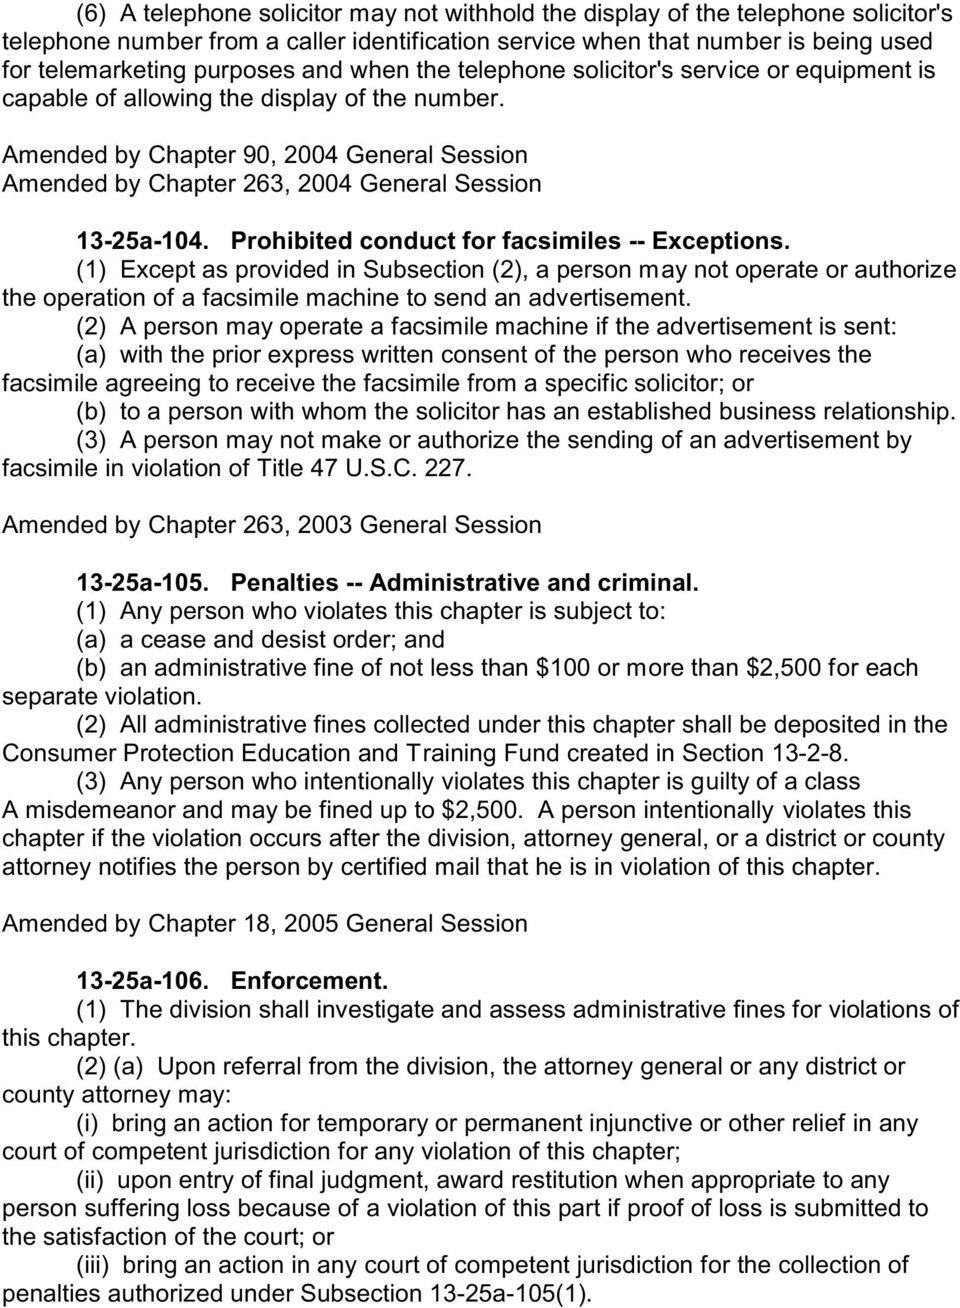 Amended by Chapter 90, 2004 General Session Amended by Chapter 263, 2004 General Session 13-25a-104. Prohibited conduct for facsimiles -- Exceptions.